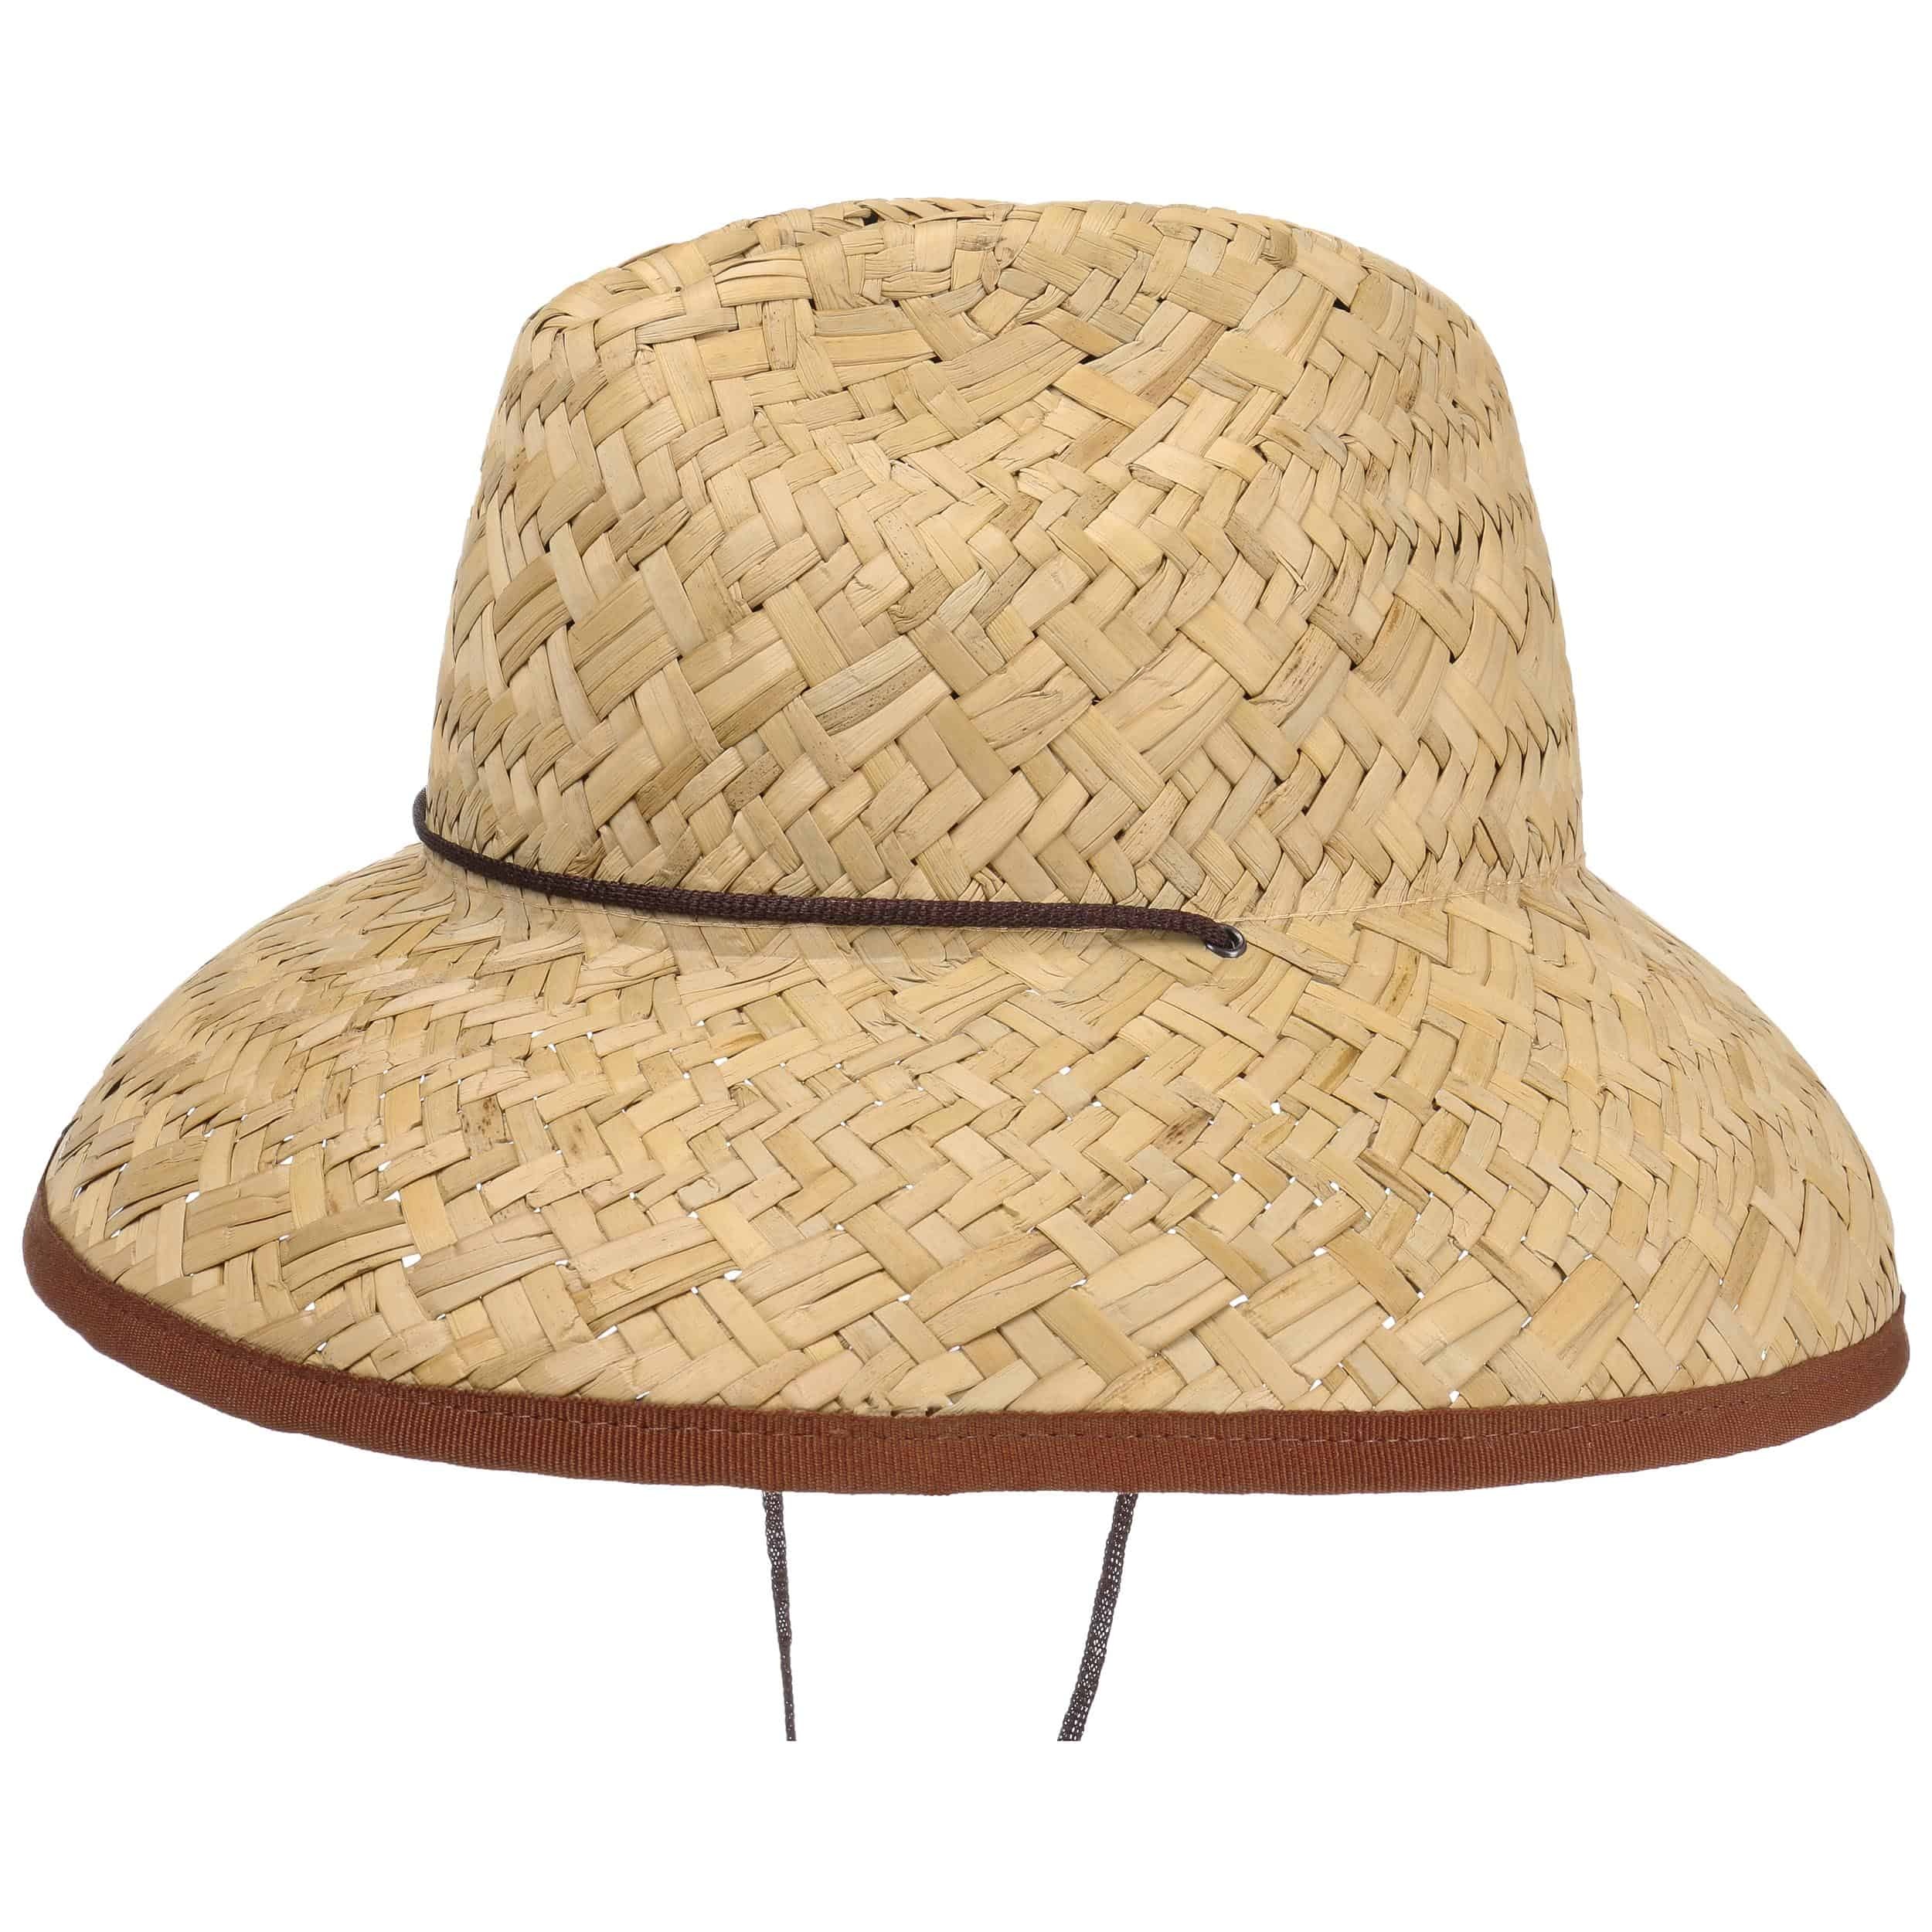 842acf3c24d73 Lifeguard Straw Hat by Lipodo